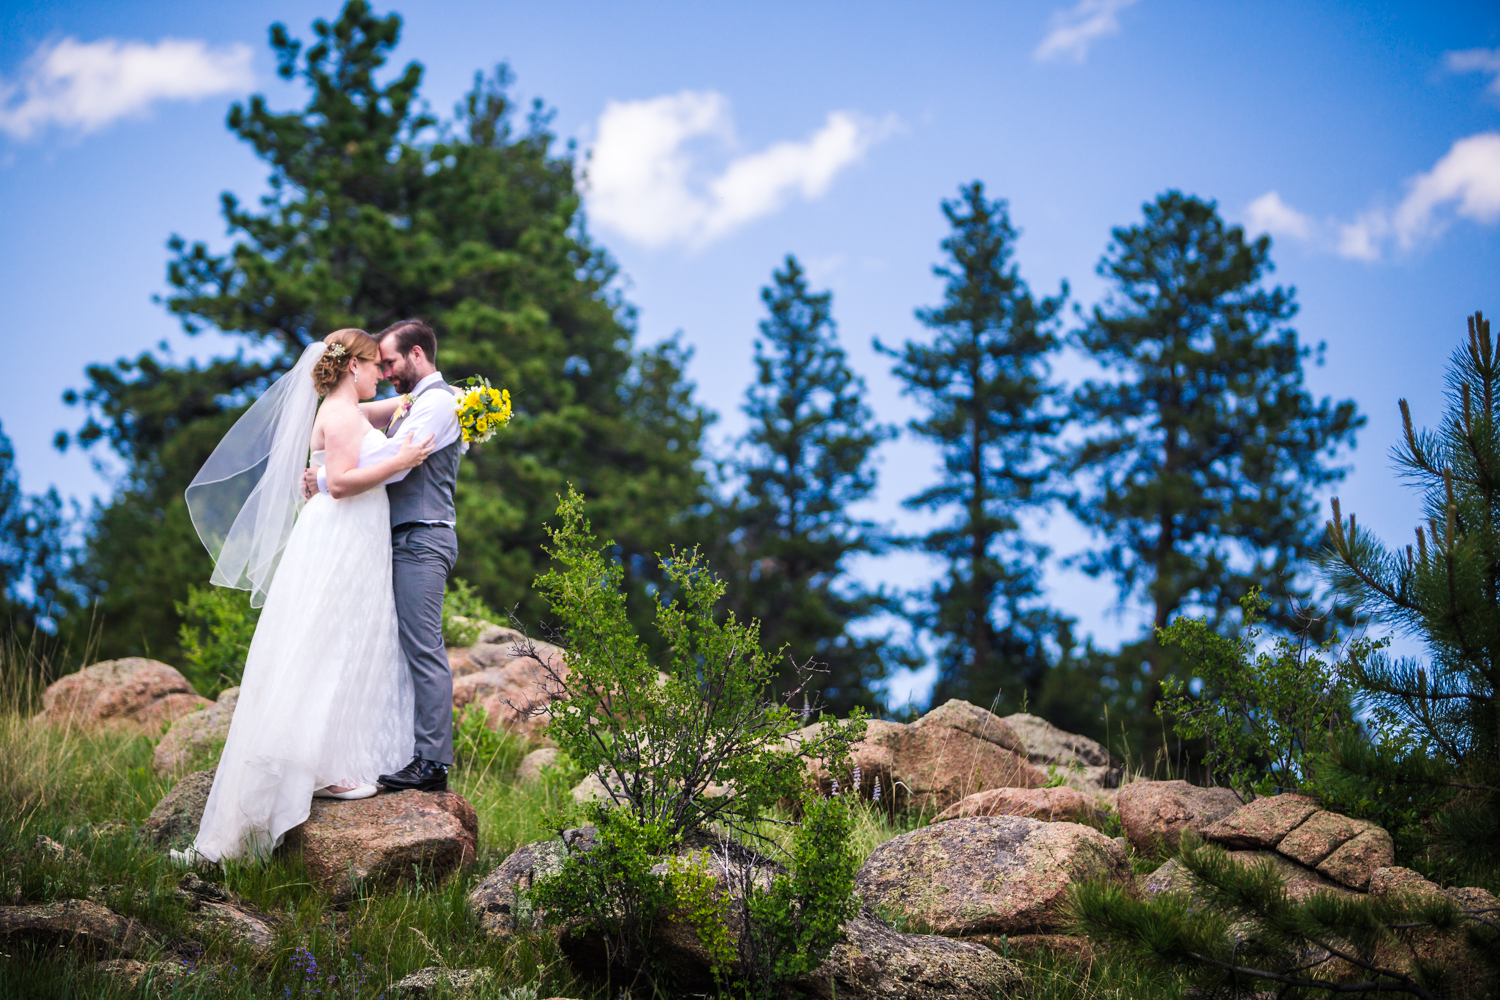 Deer Creek Valley Ranch Wedding photographed by JMGant Photography.